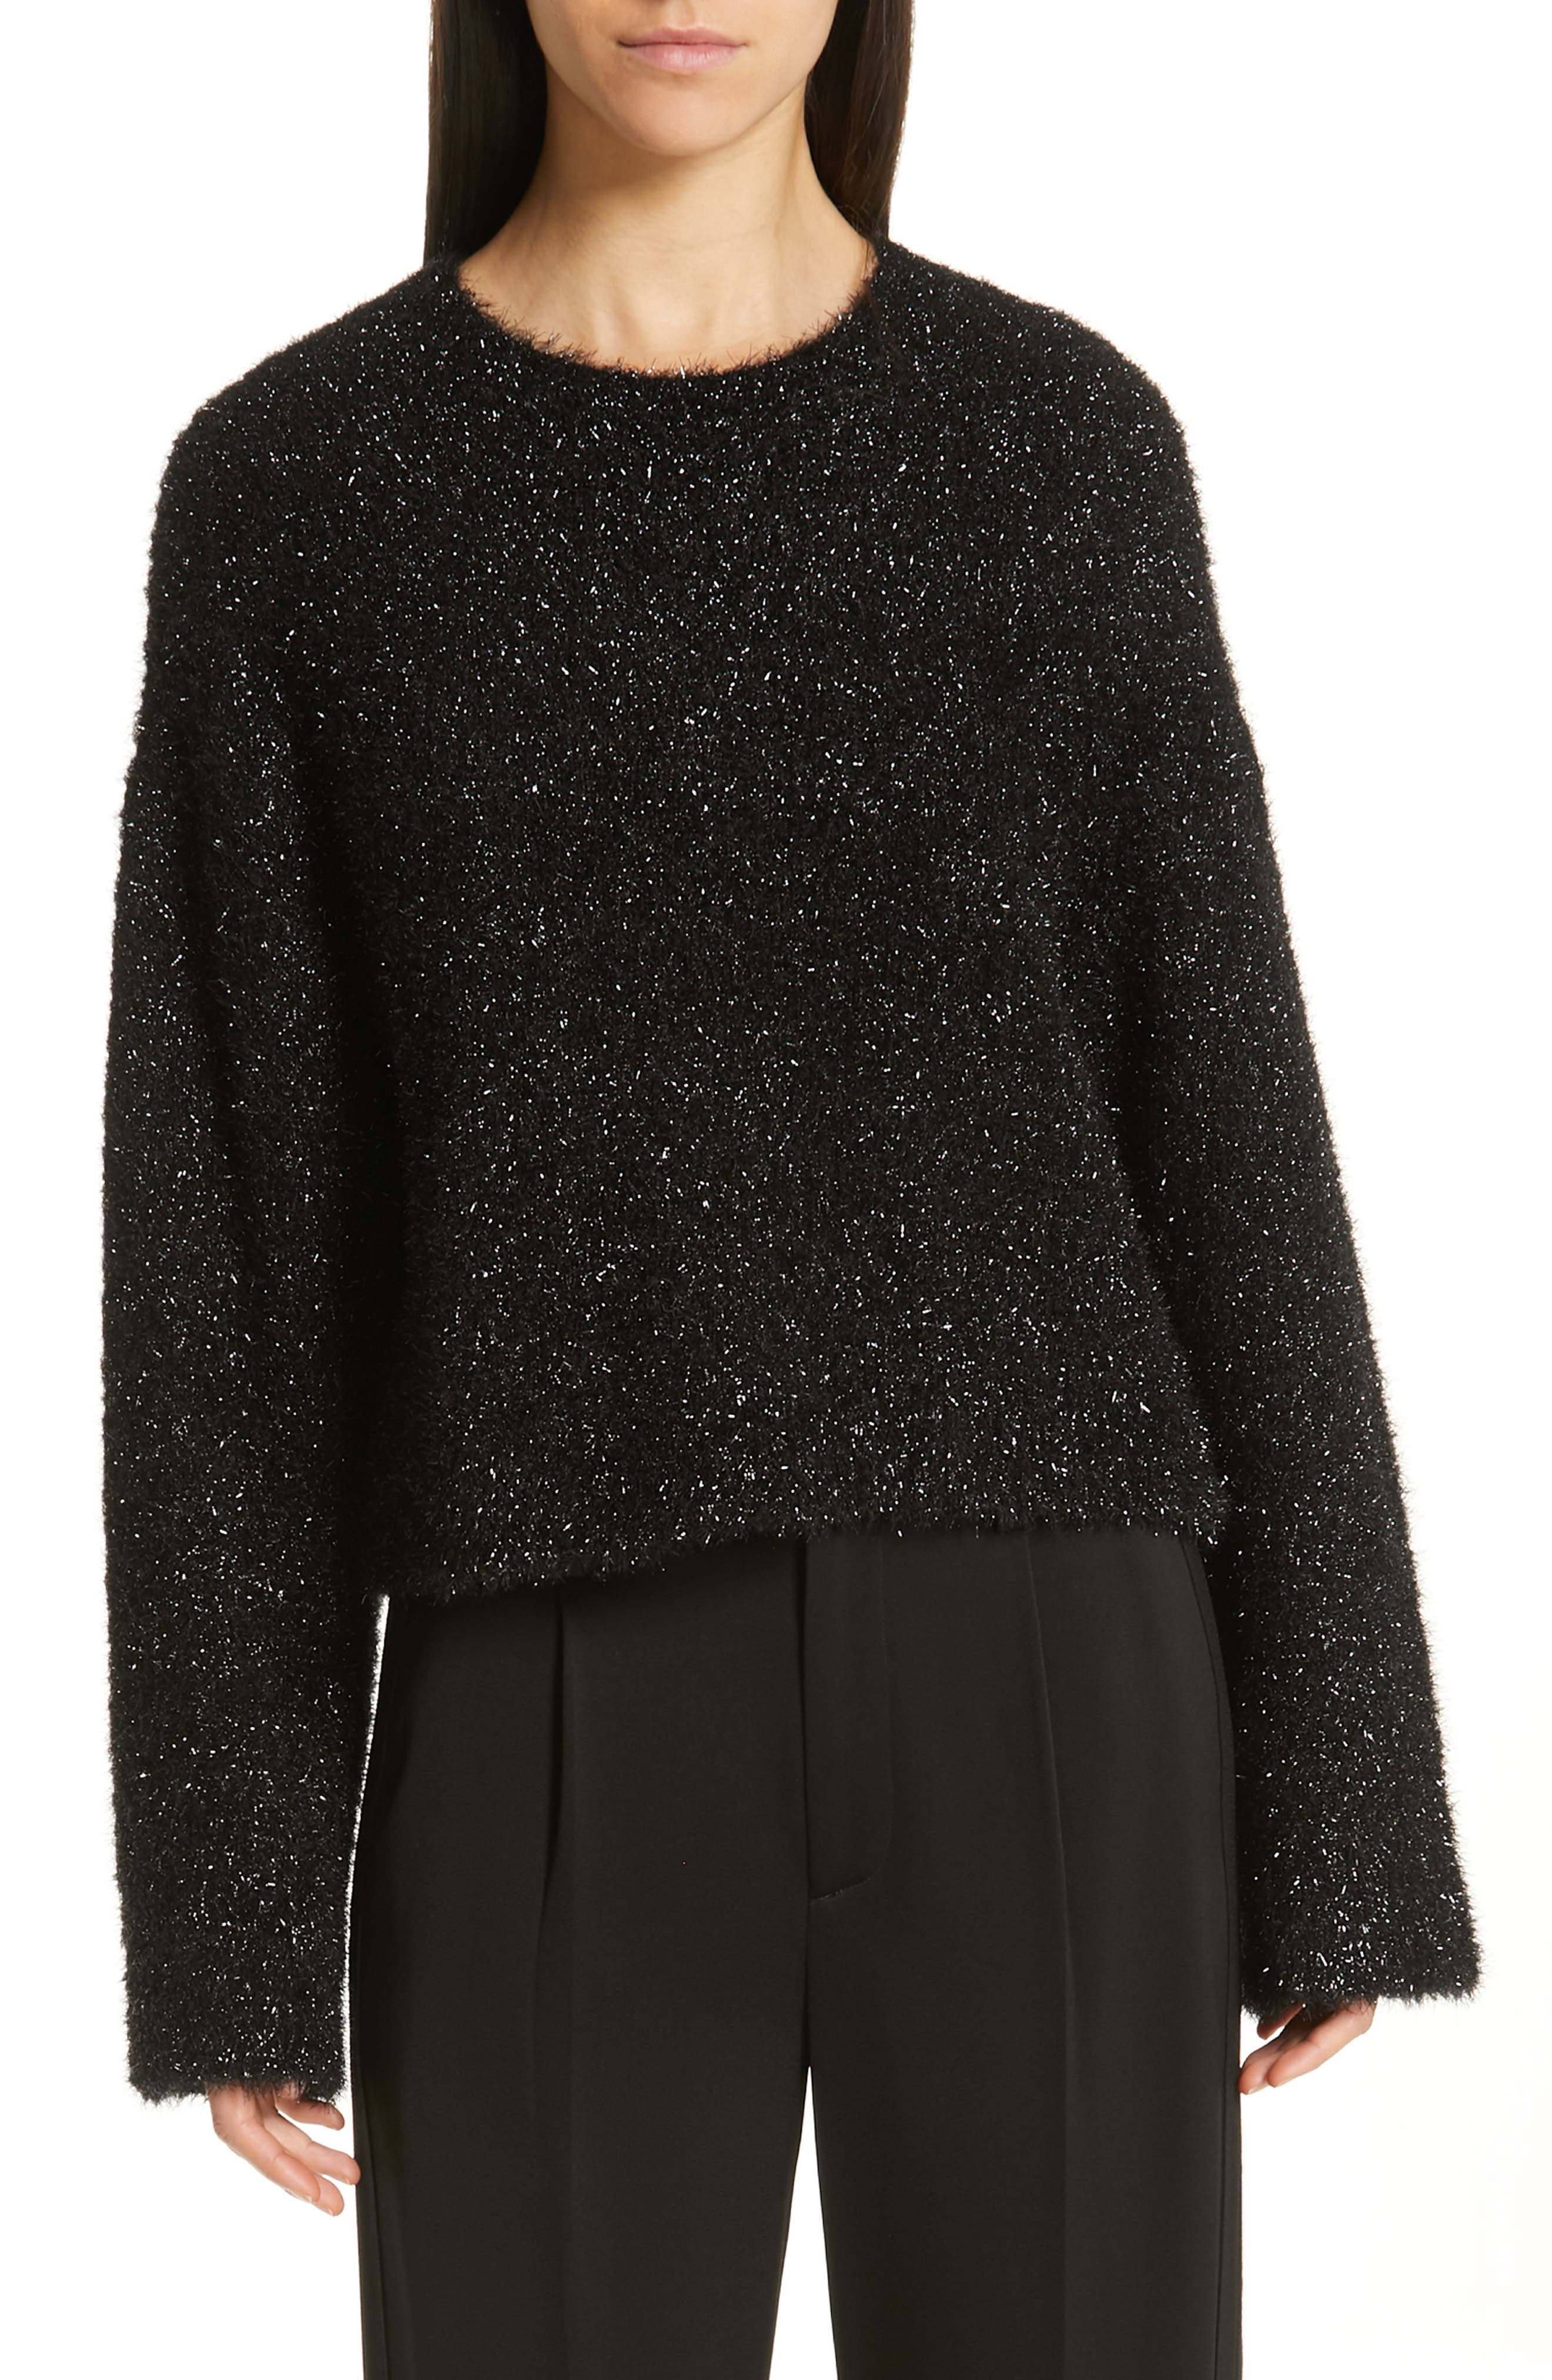 VINCE Boxy Metallic Knit Sweater, Main, color, BLACK